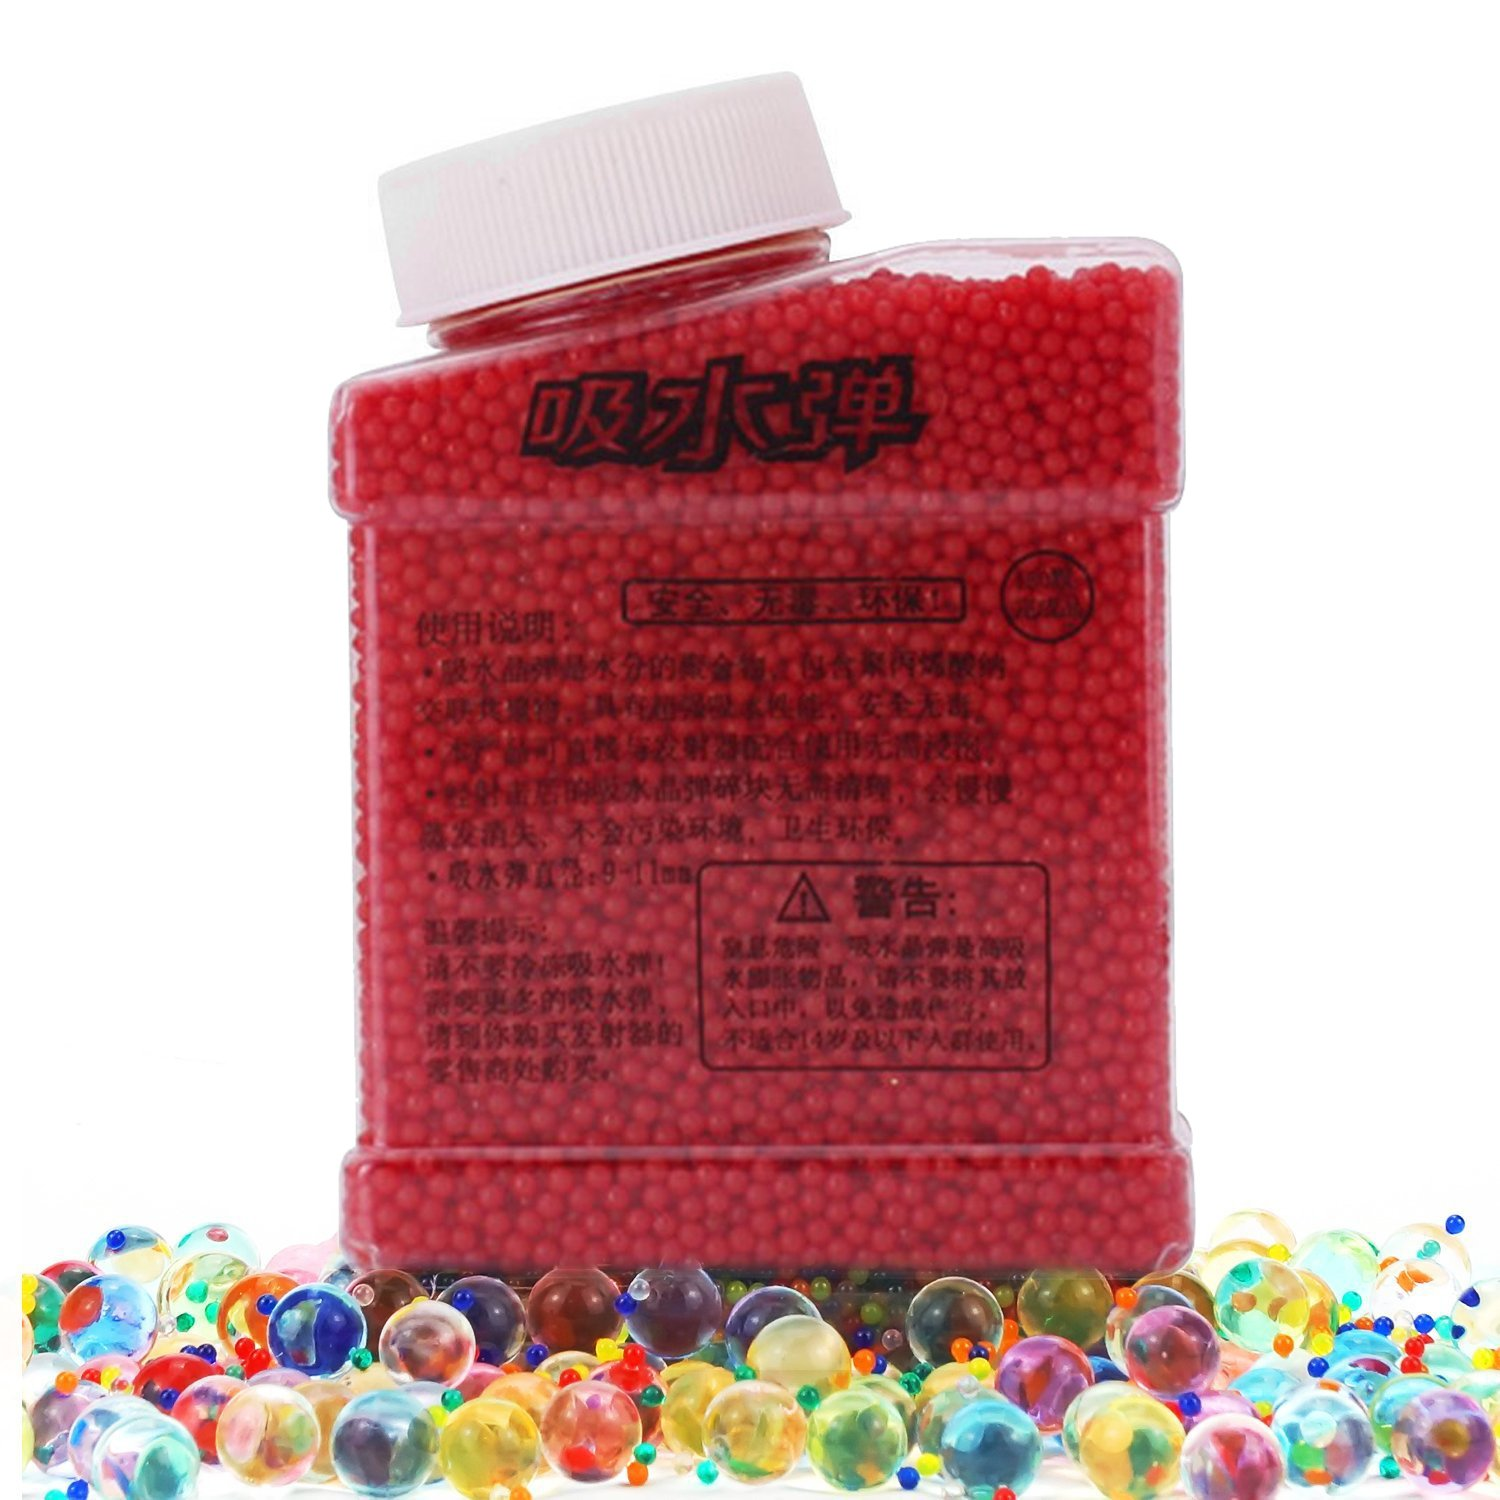 Water Beads Rainbow Mix Pearl Shaped Crystal Soil Jelly Water Growing Balls for Orbeez Refill,Kids Tactile Toys,Sensory Toys,Vase Fillerr,Plants Craft,Party,Home Decoration,20000pcs/Pack (Mixcolor) Suces